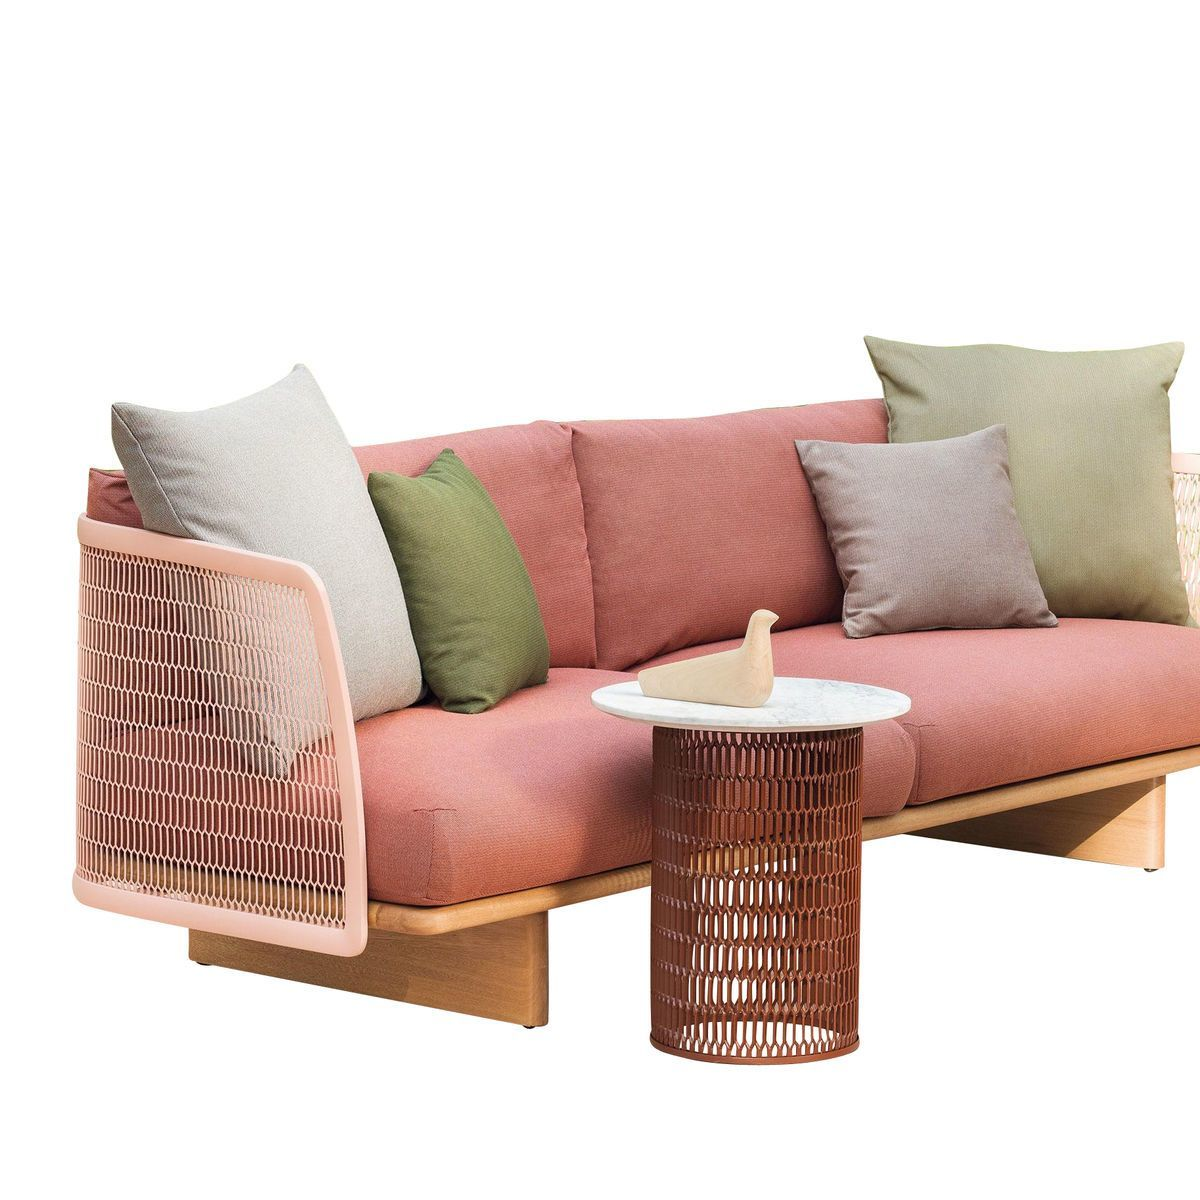 Kettal   Mesh Outdoor Sofa 264x76x91cm   Light Pink/cushion Of Fabric Ash  Rose Laminate